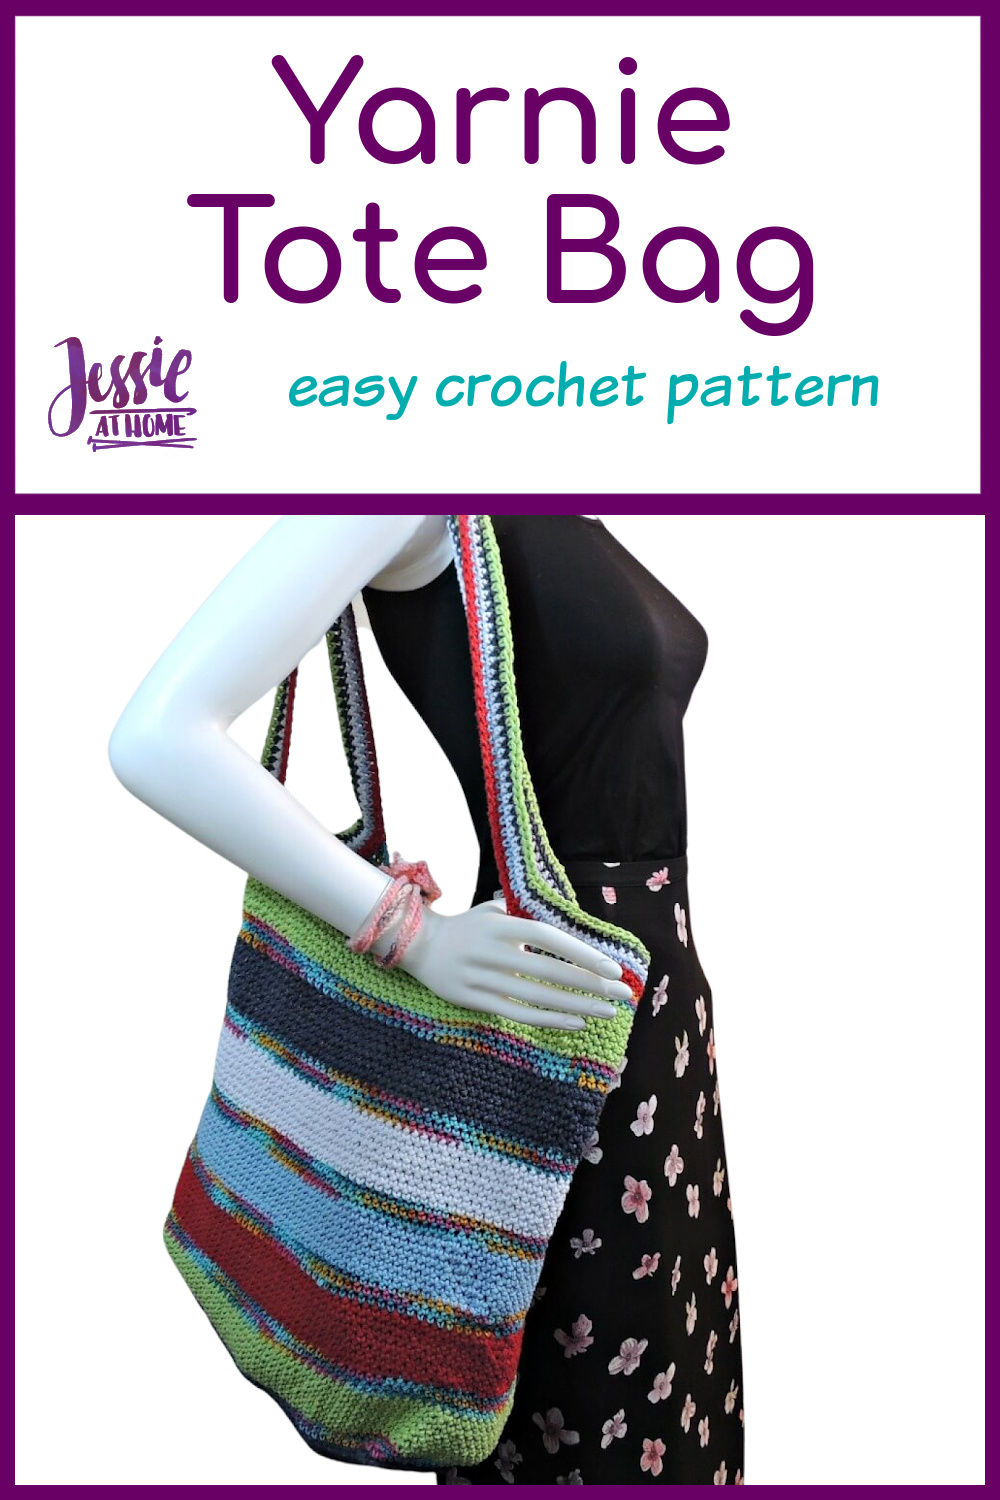 Yarnie Tote Bag - free crochet pattern by Jessie At Home - Pin 1